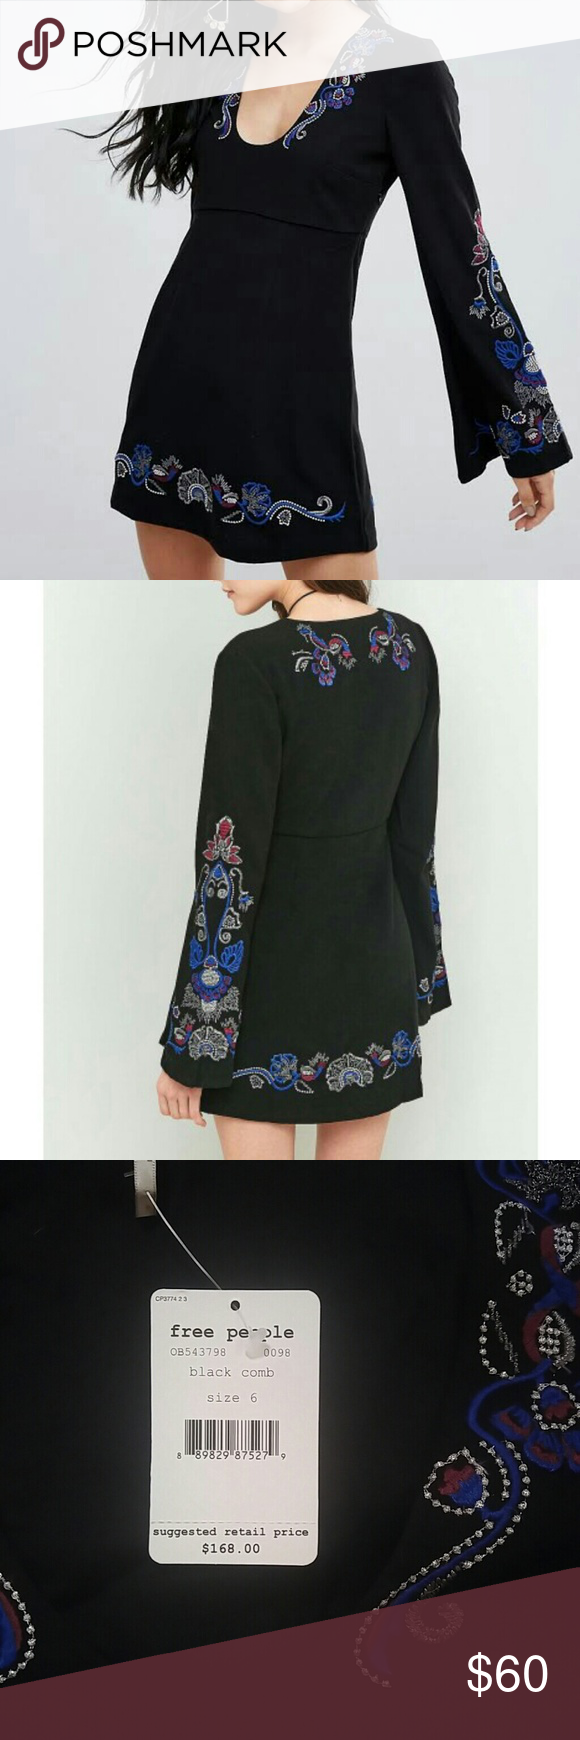 a46bec2ab437 Free People dress Free people Holiday Folk mini dress. Fully lined. Low  scoop neck. Floral embroidered details. Flared sleeves. Side-zip fastening.